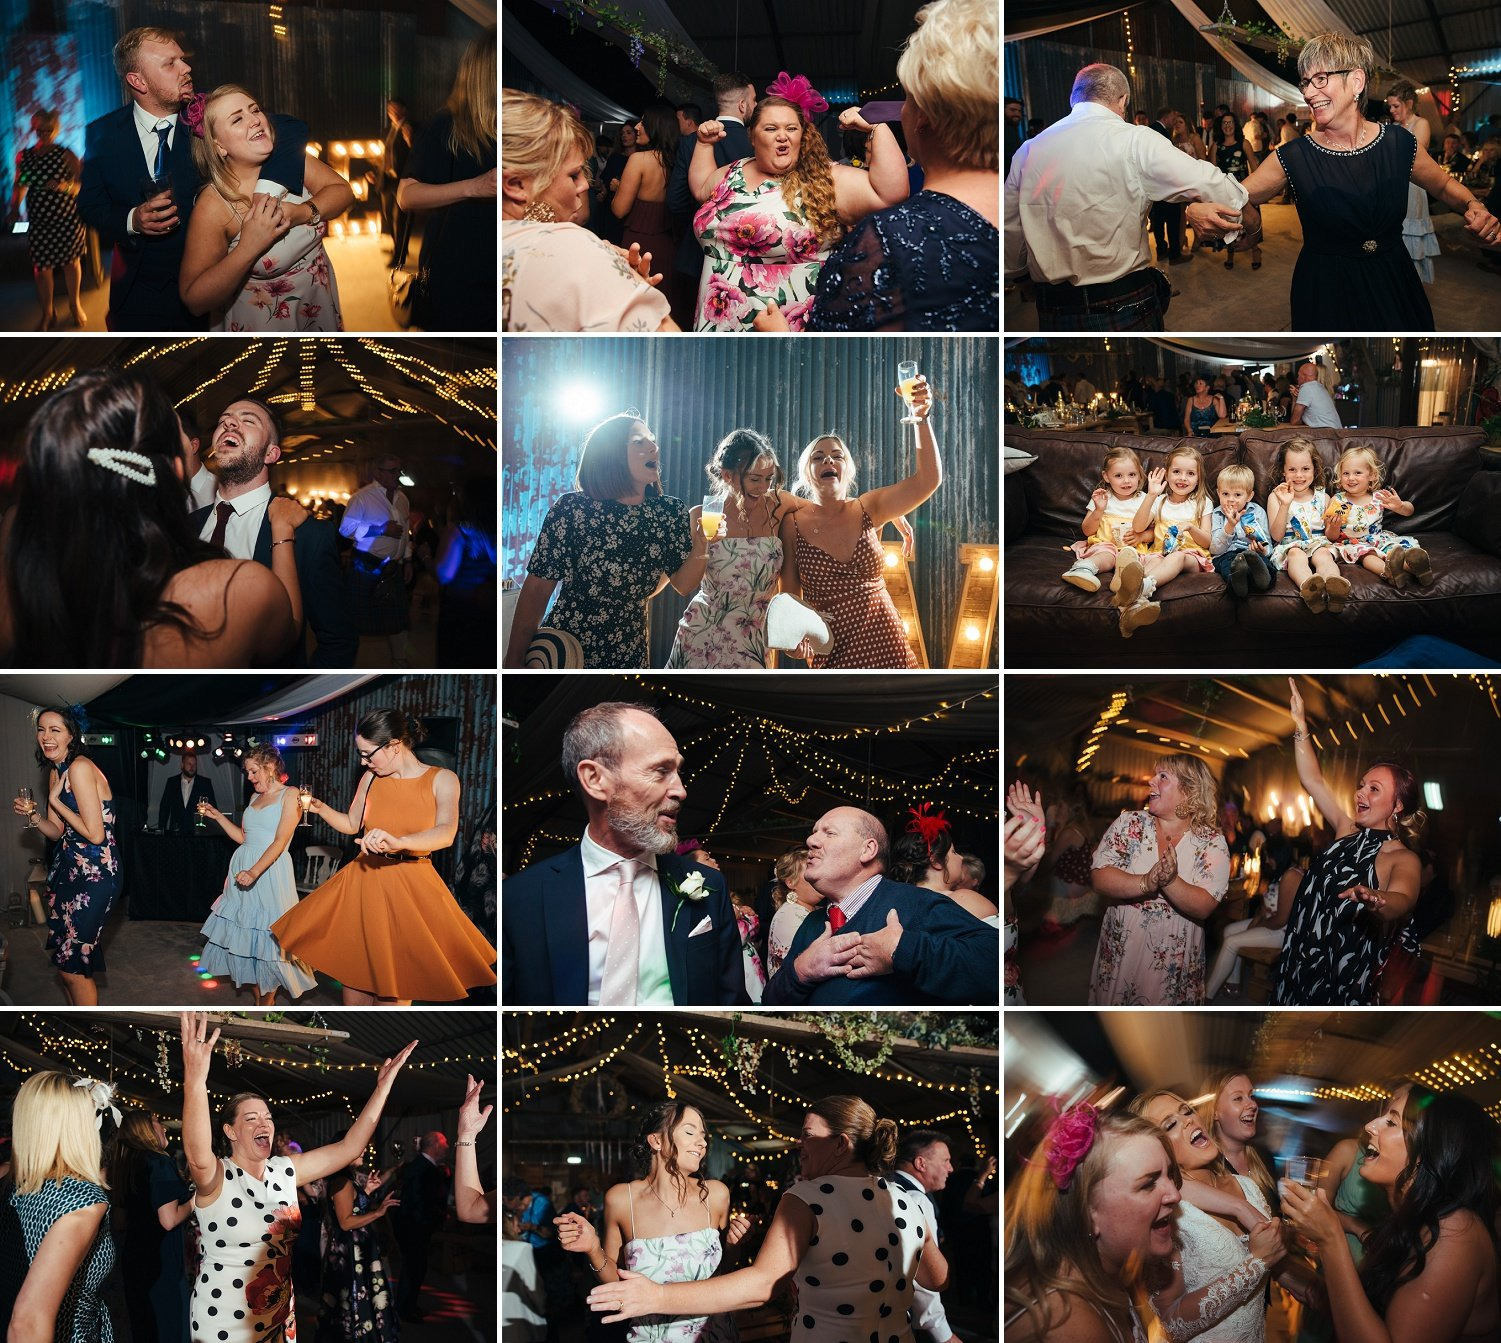 Party at a Barn wedding at the Redbank near Hereford